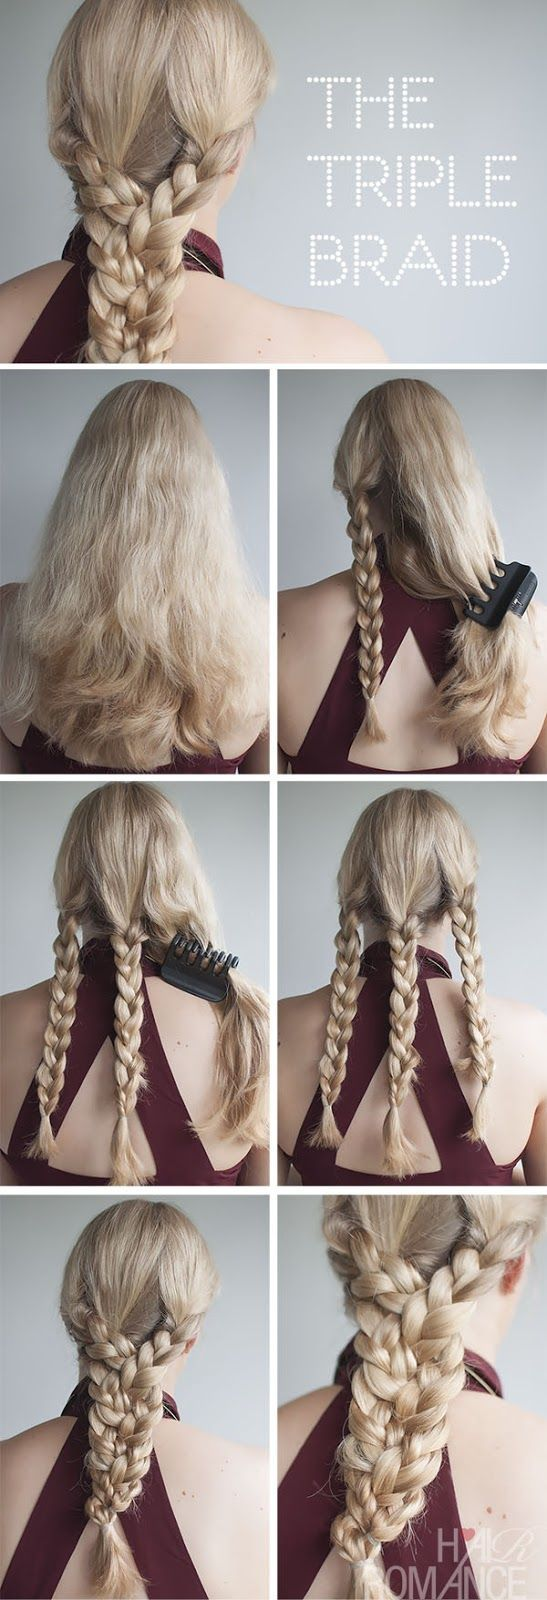 15 Prom Hair Hacks, Tips and Tricks Inspired By Every Disney Princess                                                                                                                                                                                 More